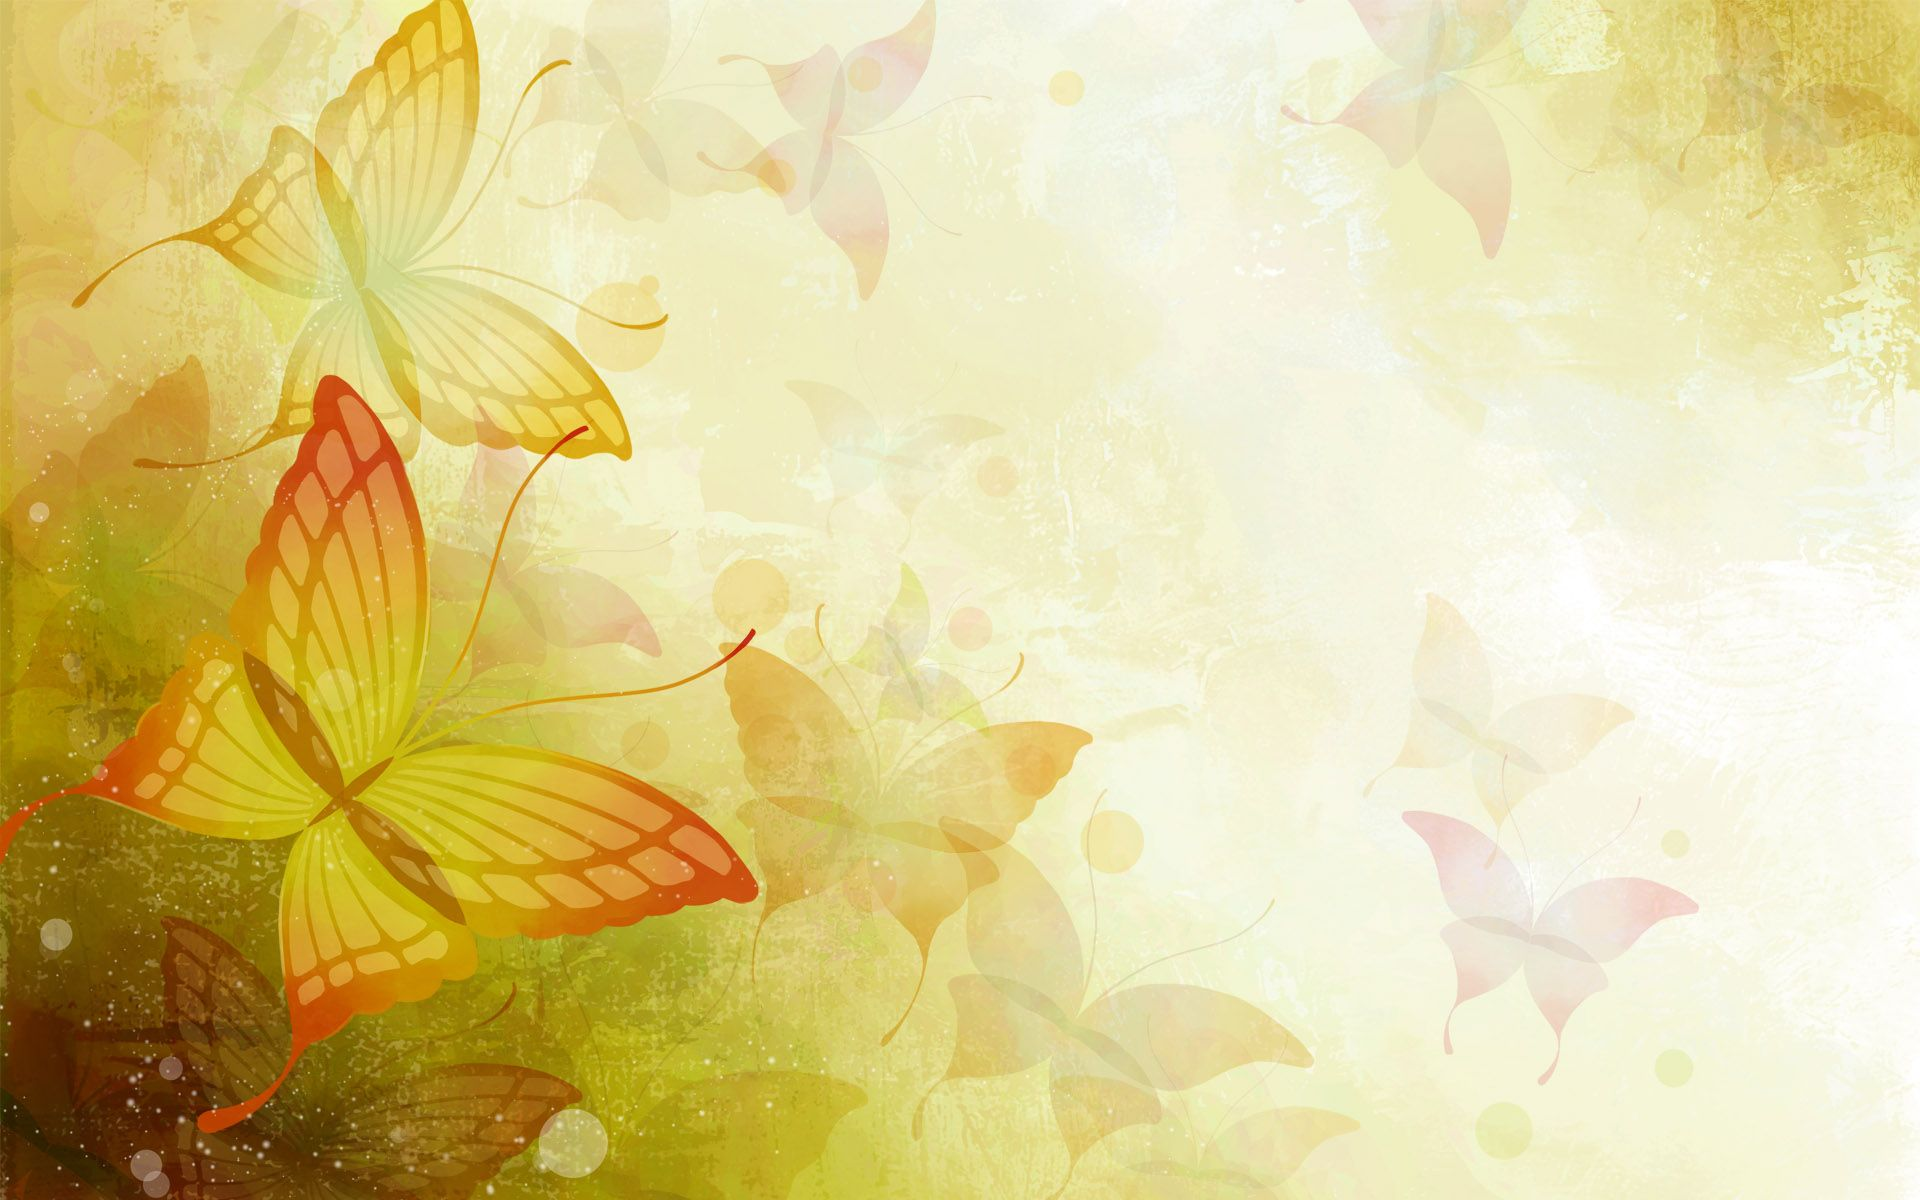 Flower butterfly autumn backgrounds for powerpoint templatesg flower butterfly autumn backgrounds for powerpoint templatesg 19201200 vrtec pinterest toneelgroepblik Choice Image